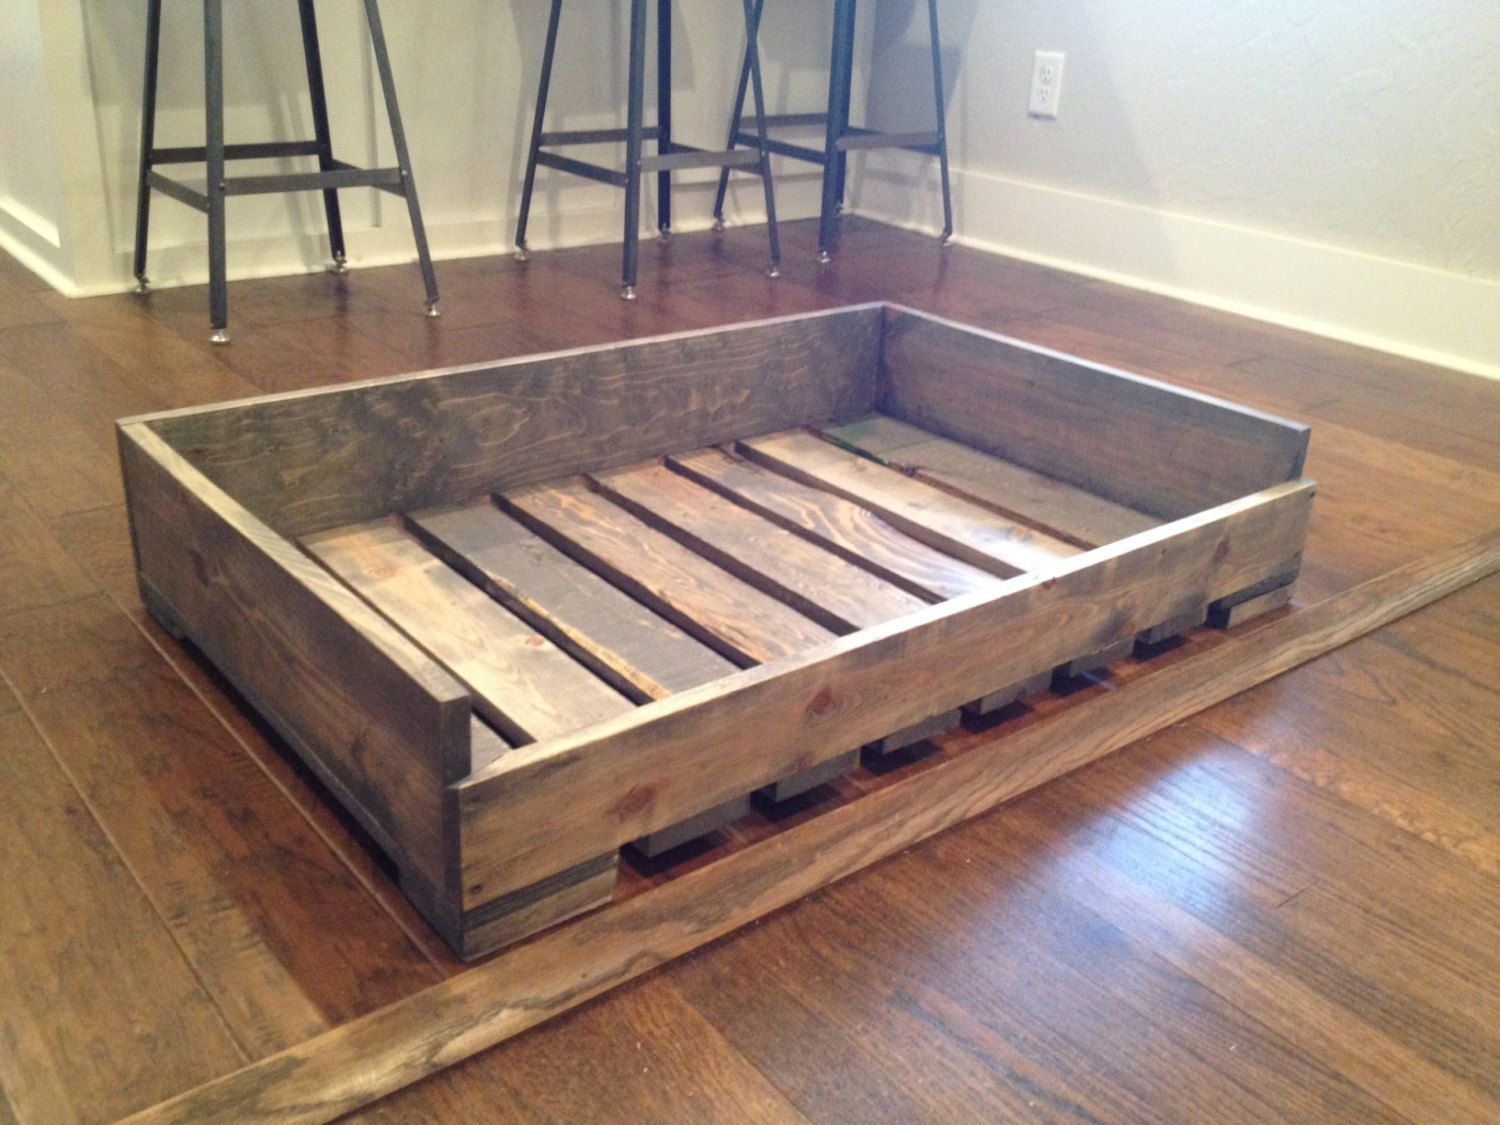 DIY rustic dog bed made from pallets. | Pallet Projects For Animals |  Pinterest | Rustic dog beds, Dog beds and Pallets